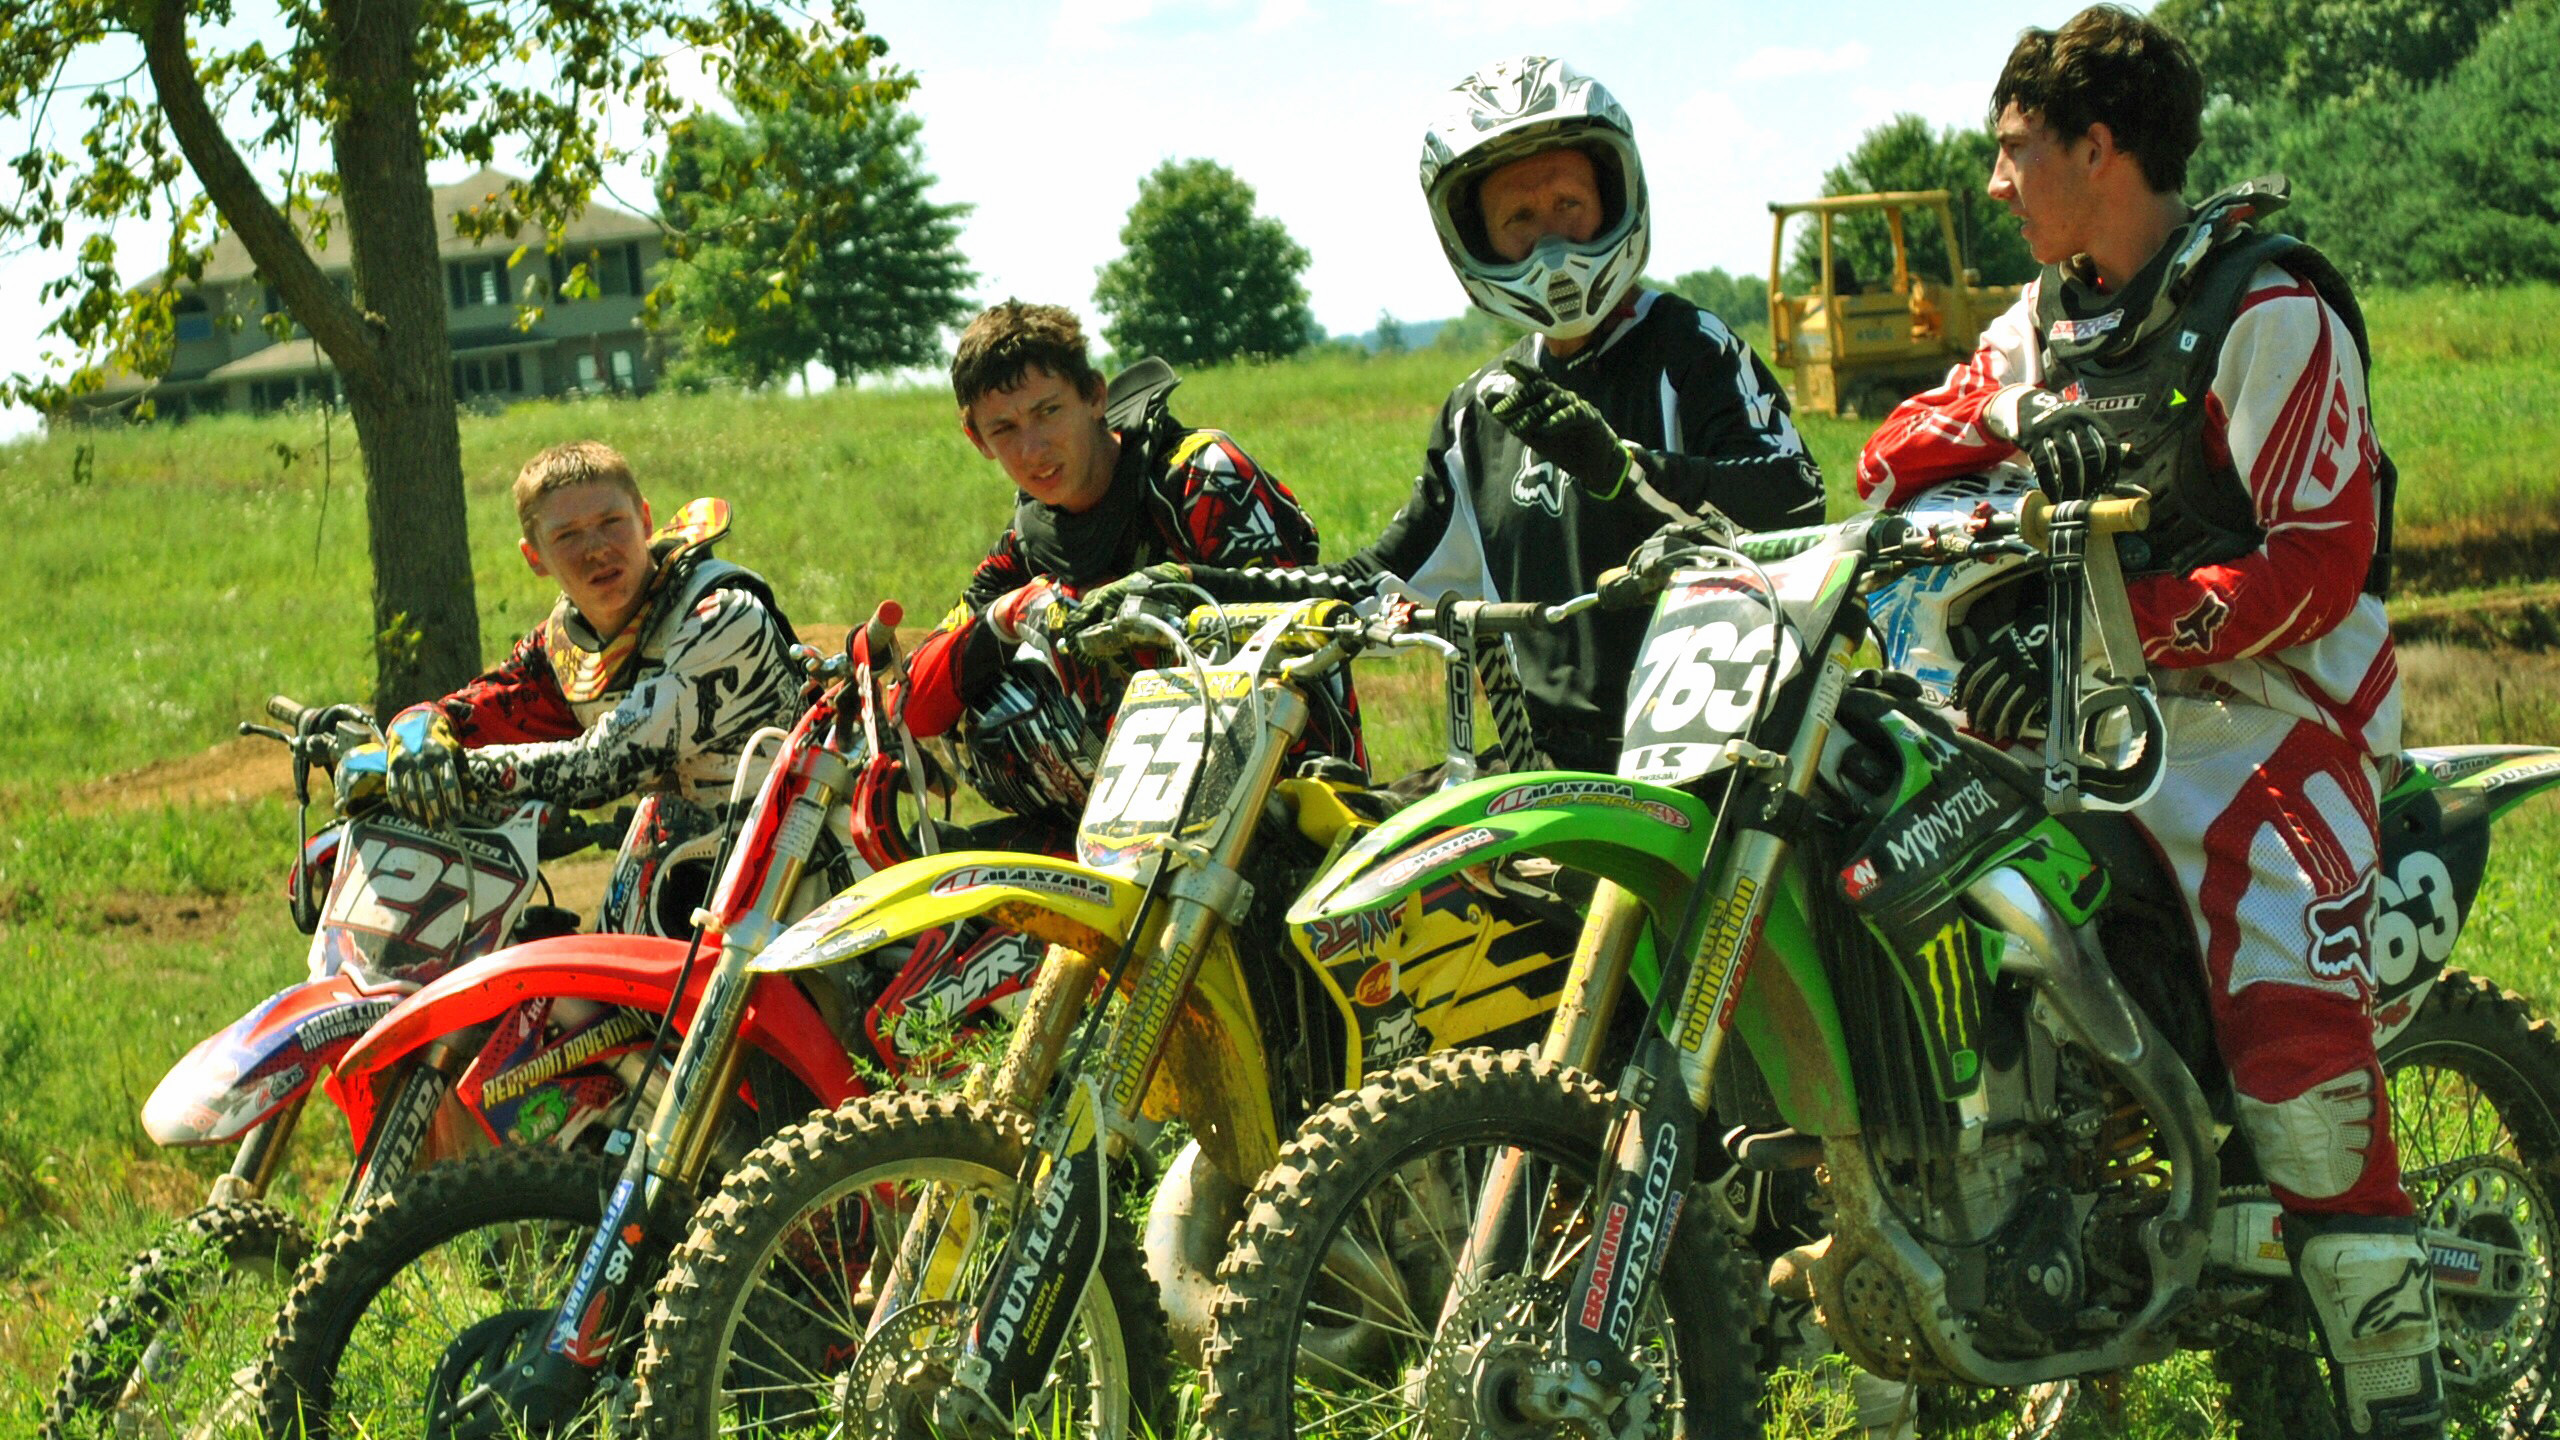 Motocross racing training